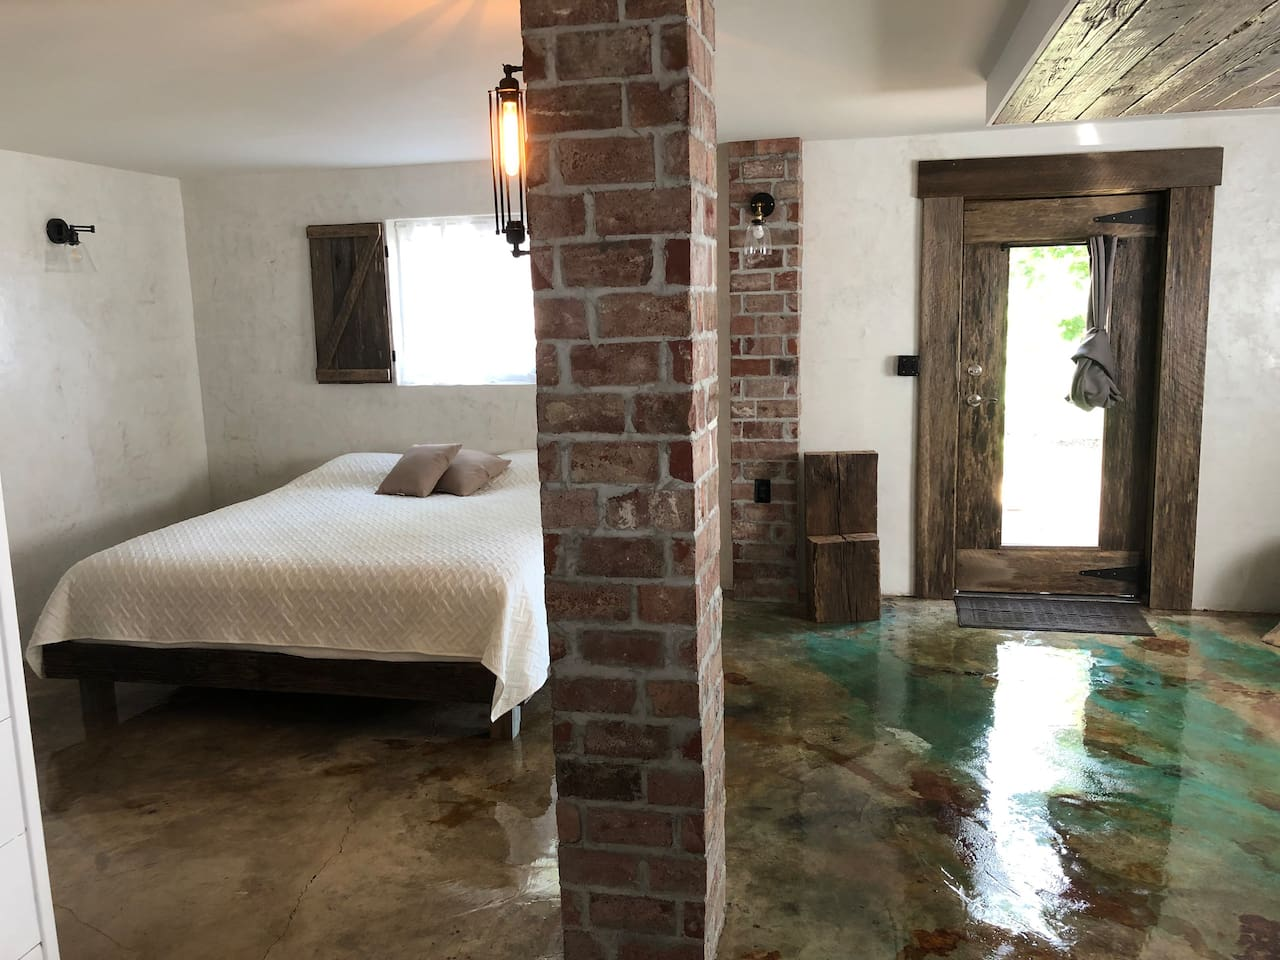 A king size bed sits amid the reclaimed brick columns and the burnished stucco walls.  The wood for the shutters and the door came from a barn built in 1900.   The wood beam entry table is from a barn built in 1850.  Even the bed frame is reclaimed.